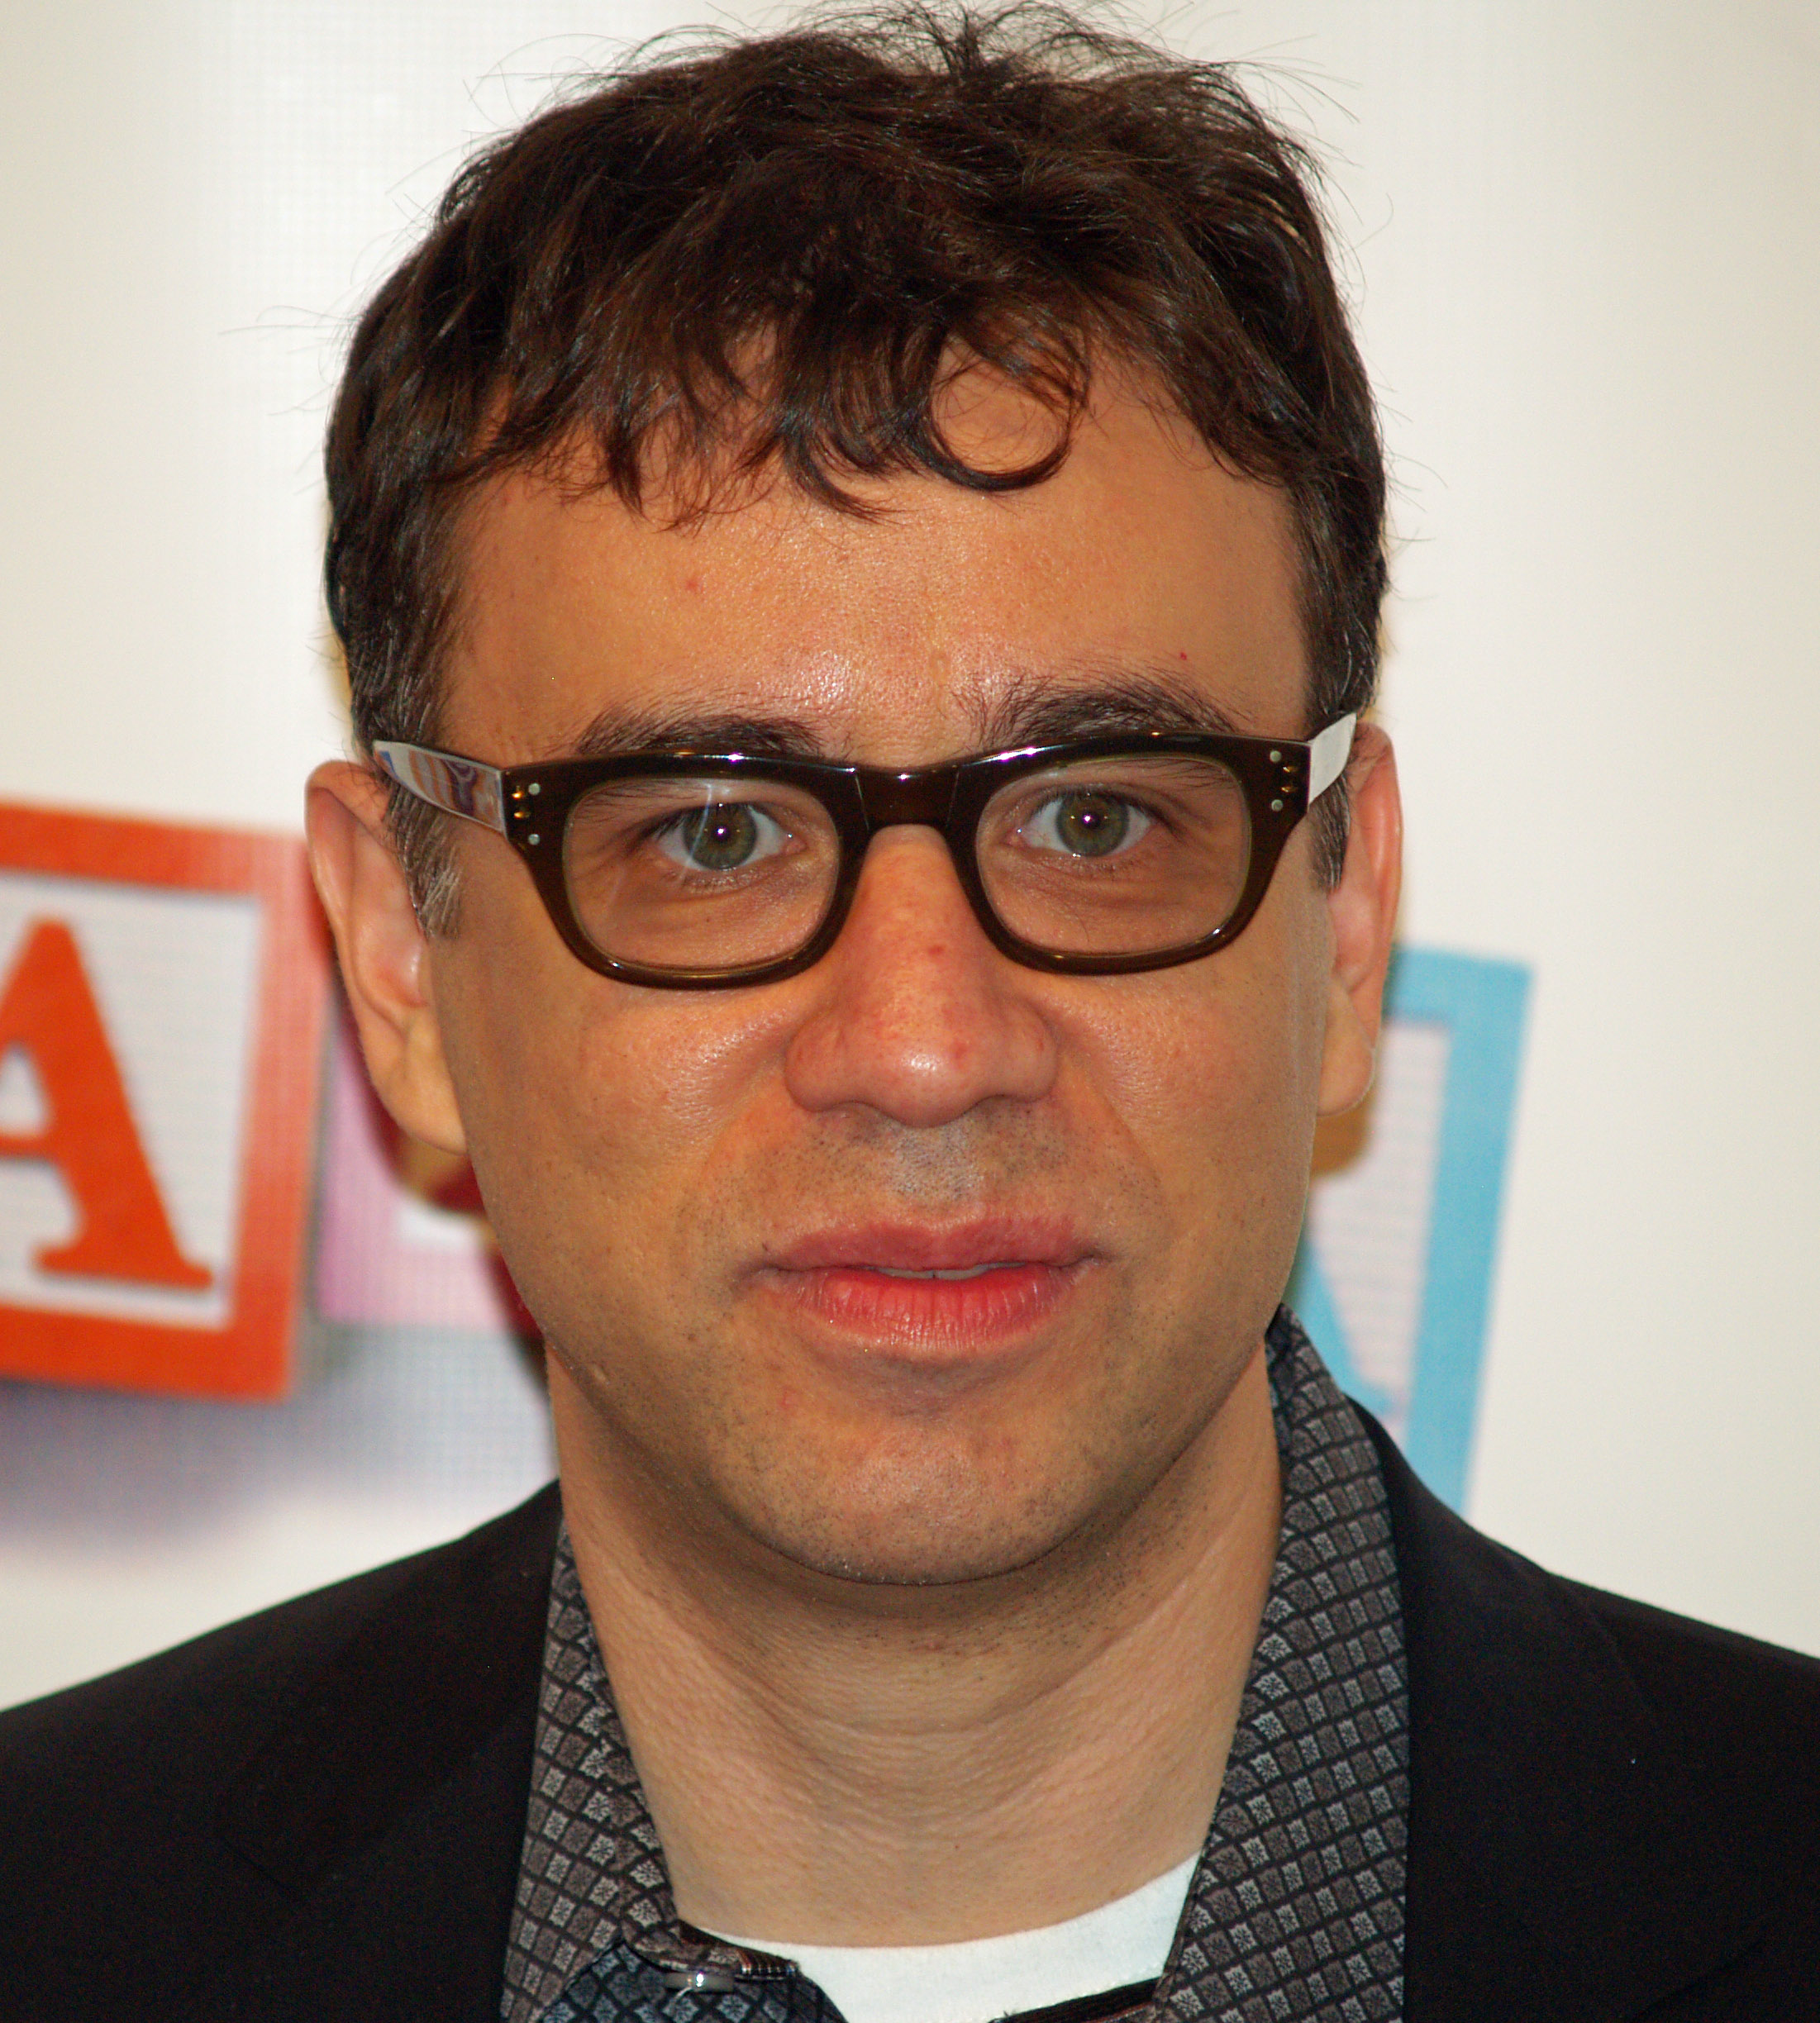 Fred Armisen - 2017 Dark Brown hair & alternative hair style. Current length:  near-shaved Hair